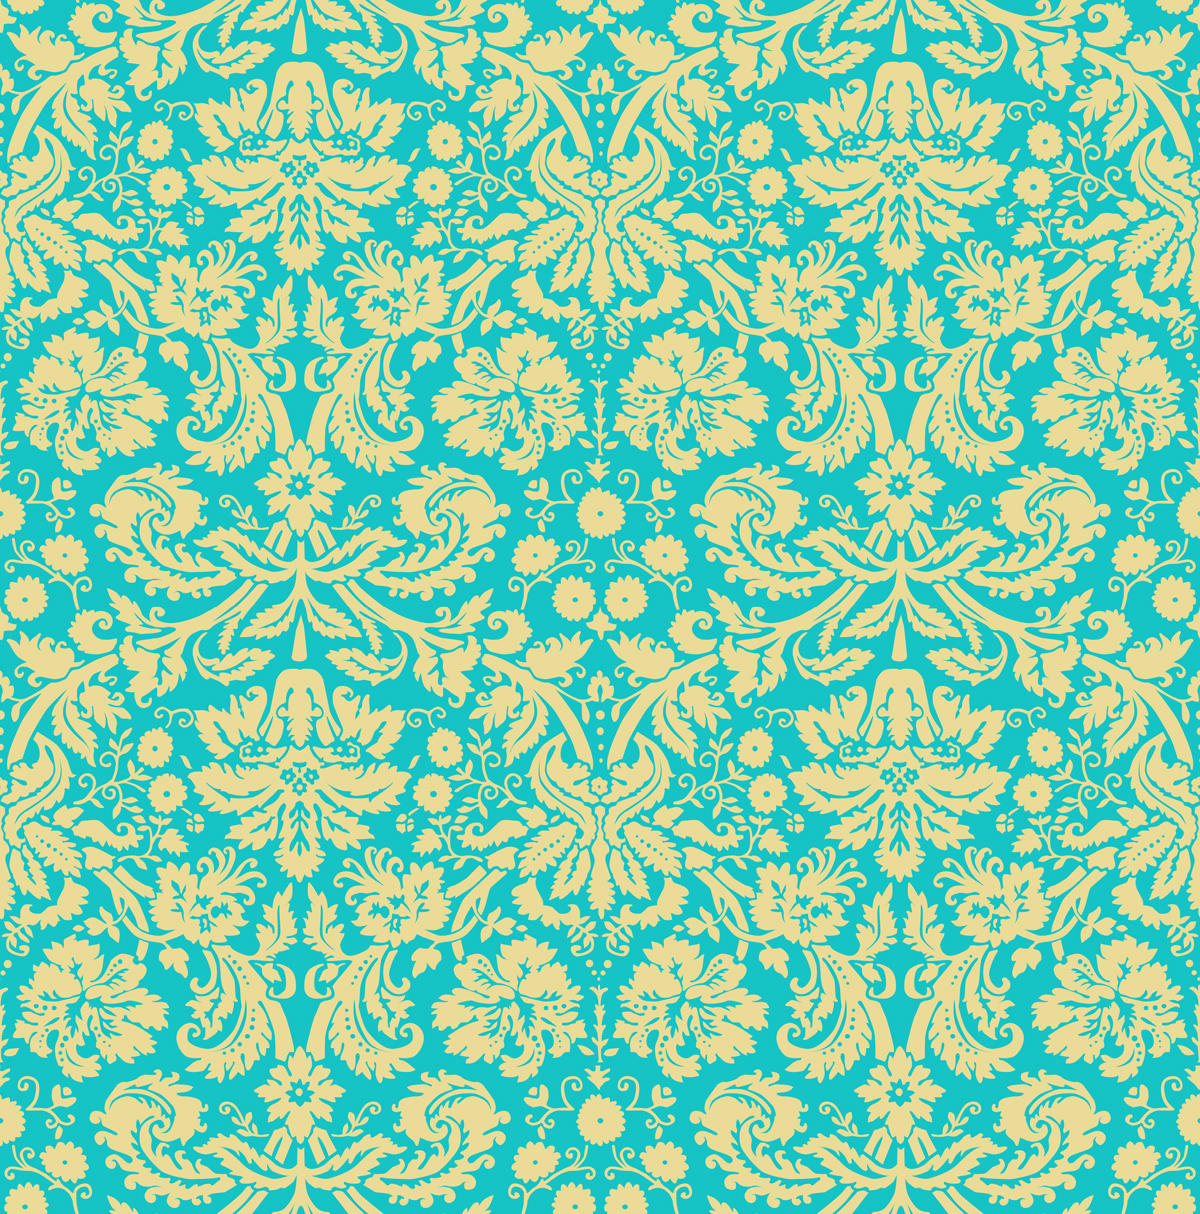 printable damask wallpaper - photo #13